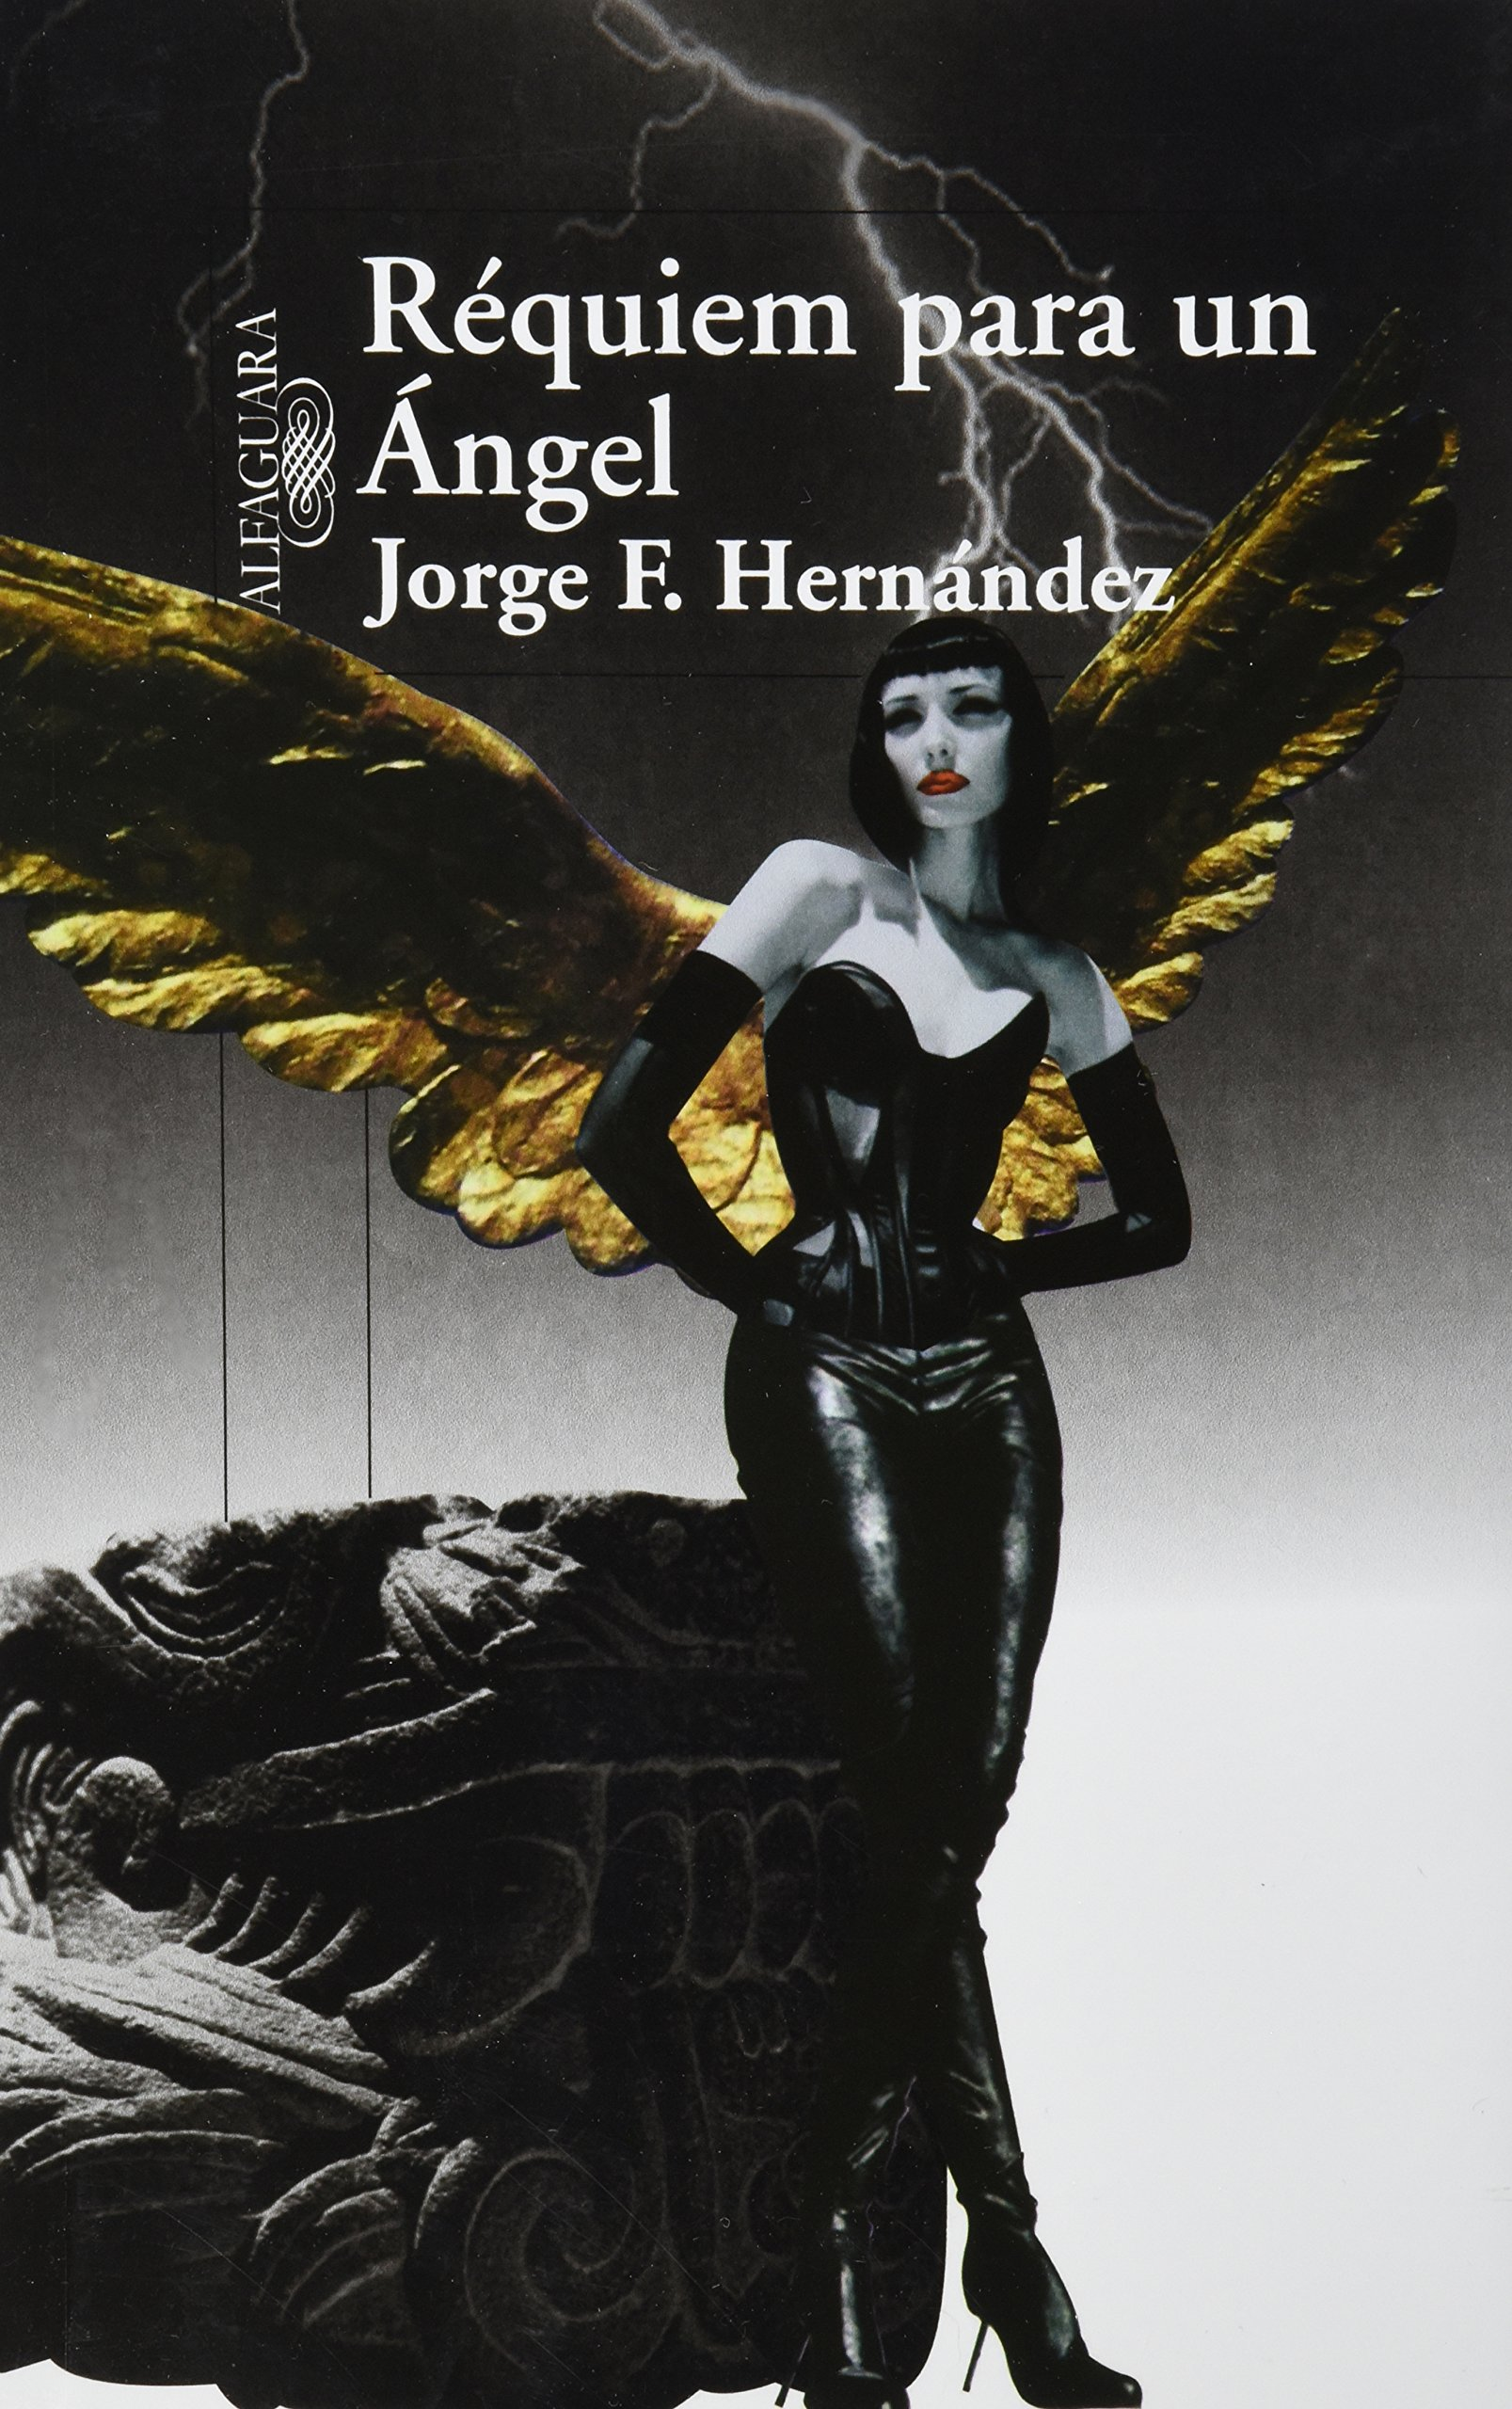 Requiem para un ángel: Jorge F. Hernandez: 9786071102072: Amazon.com: Books